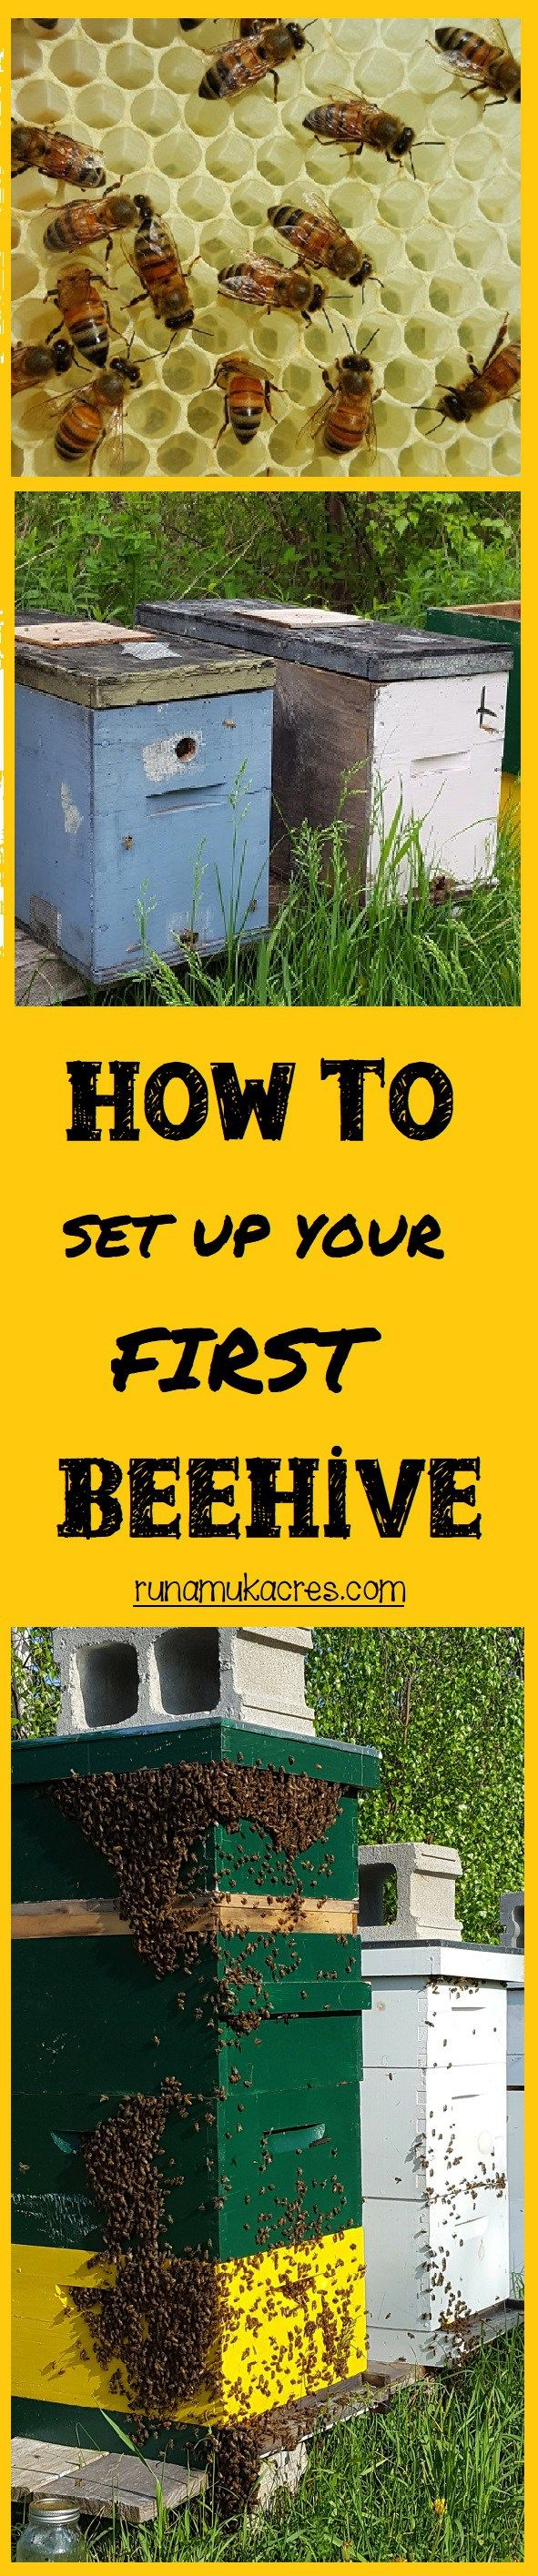 How to Set up Your First Beehive: from Runamuk Apiaries in Maine! Learn how to get started with bees, how to purchase honeybees, the difference between a package or a nucleus colony, where to site your apiary, and more!